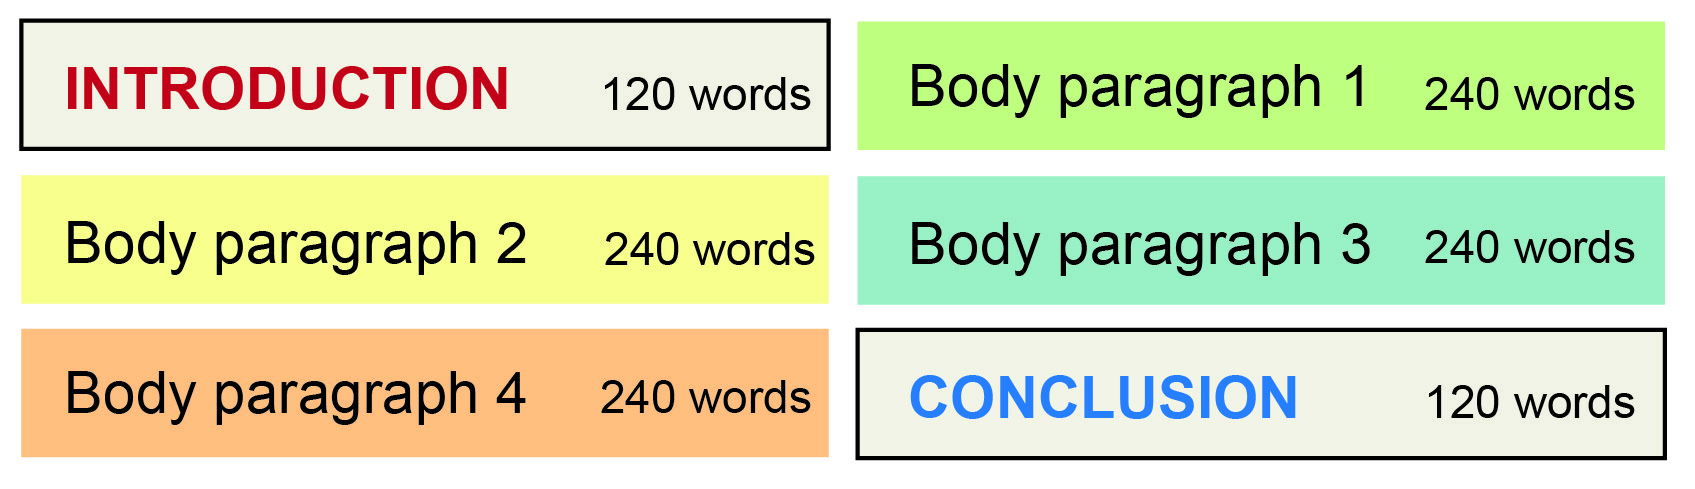 Box plan with word count